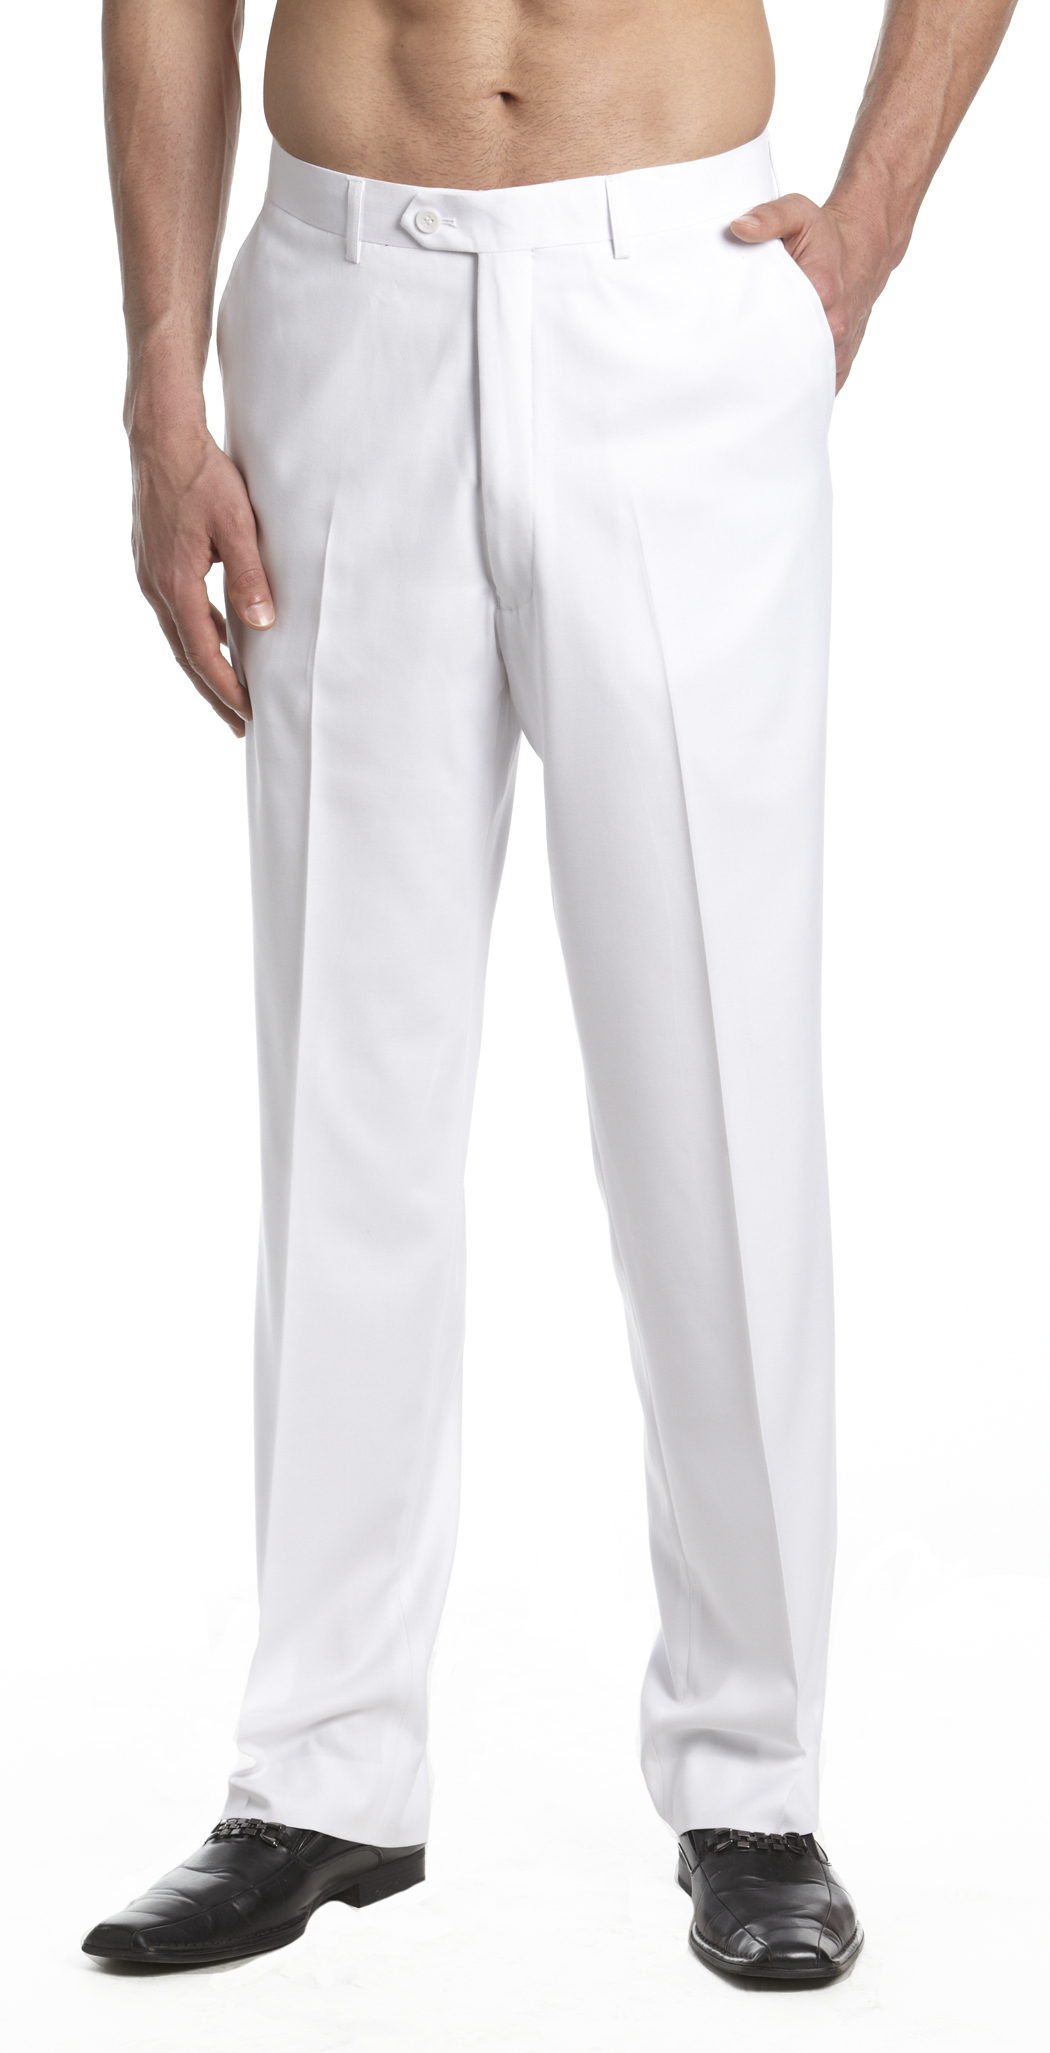 Find great deals on eBay for white trousers. Shop with confidence.